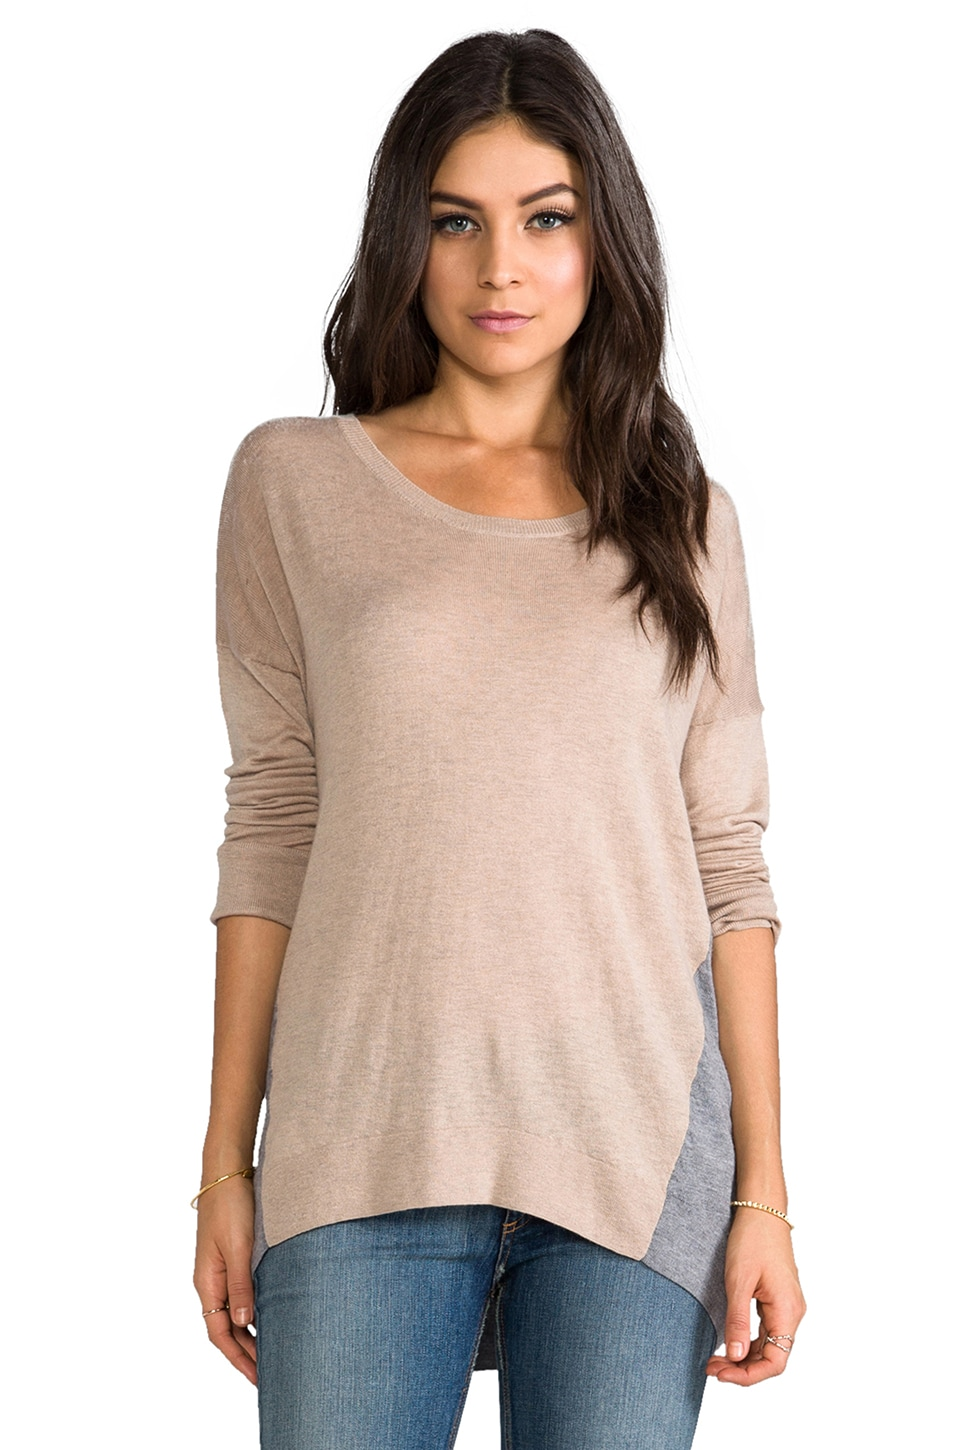 C&C California Colorblock Sweater in Oatmeal Heather